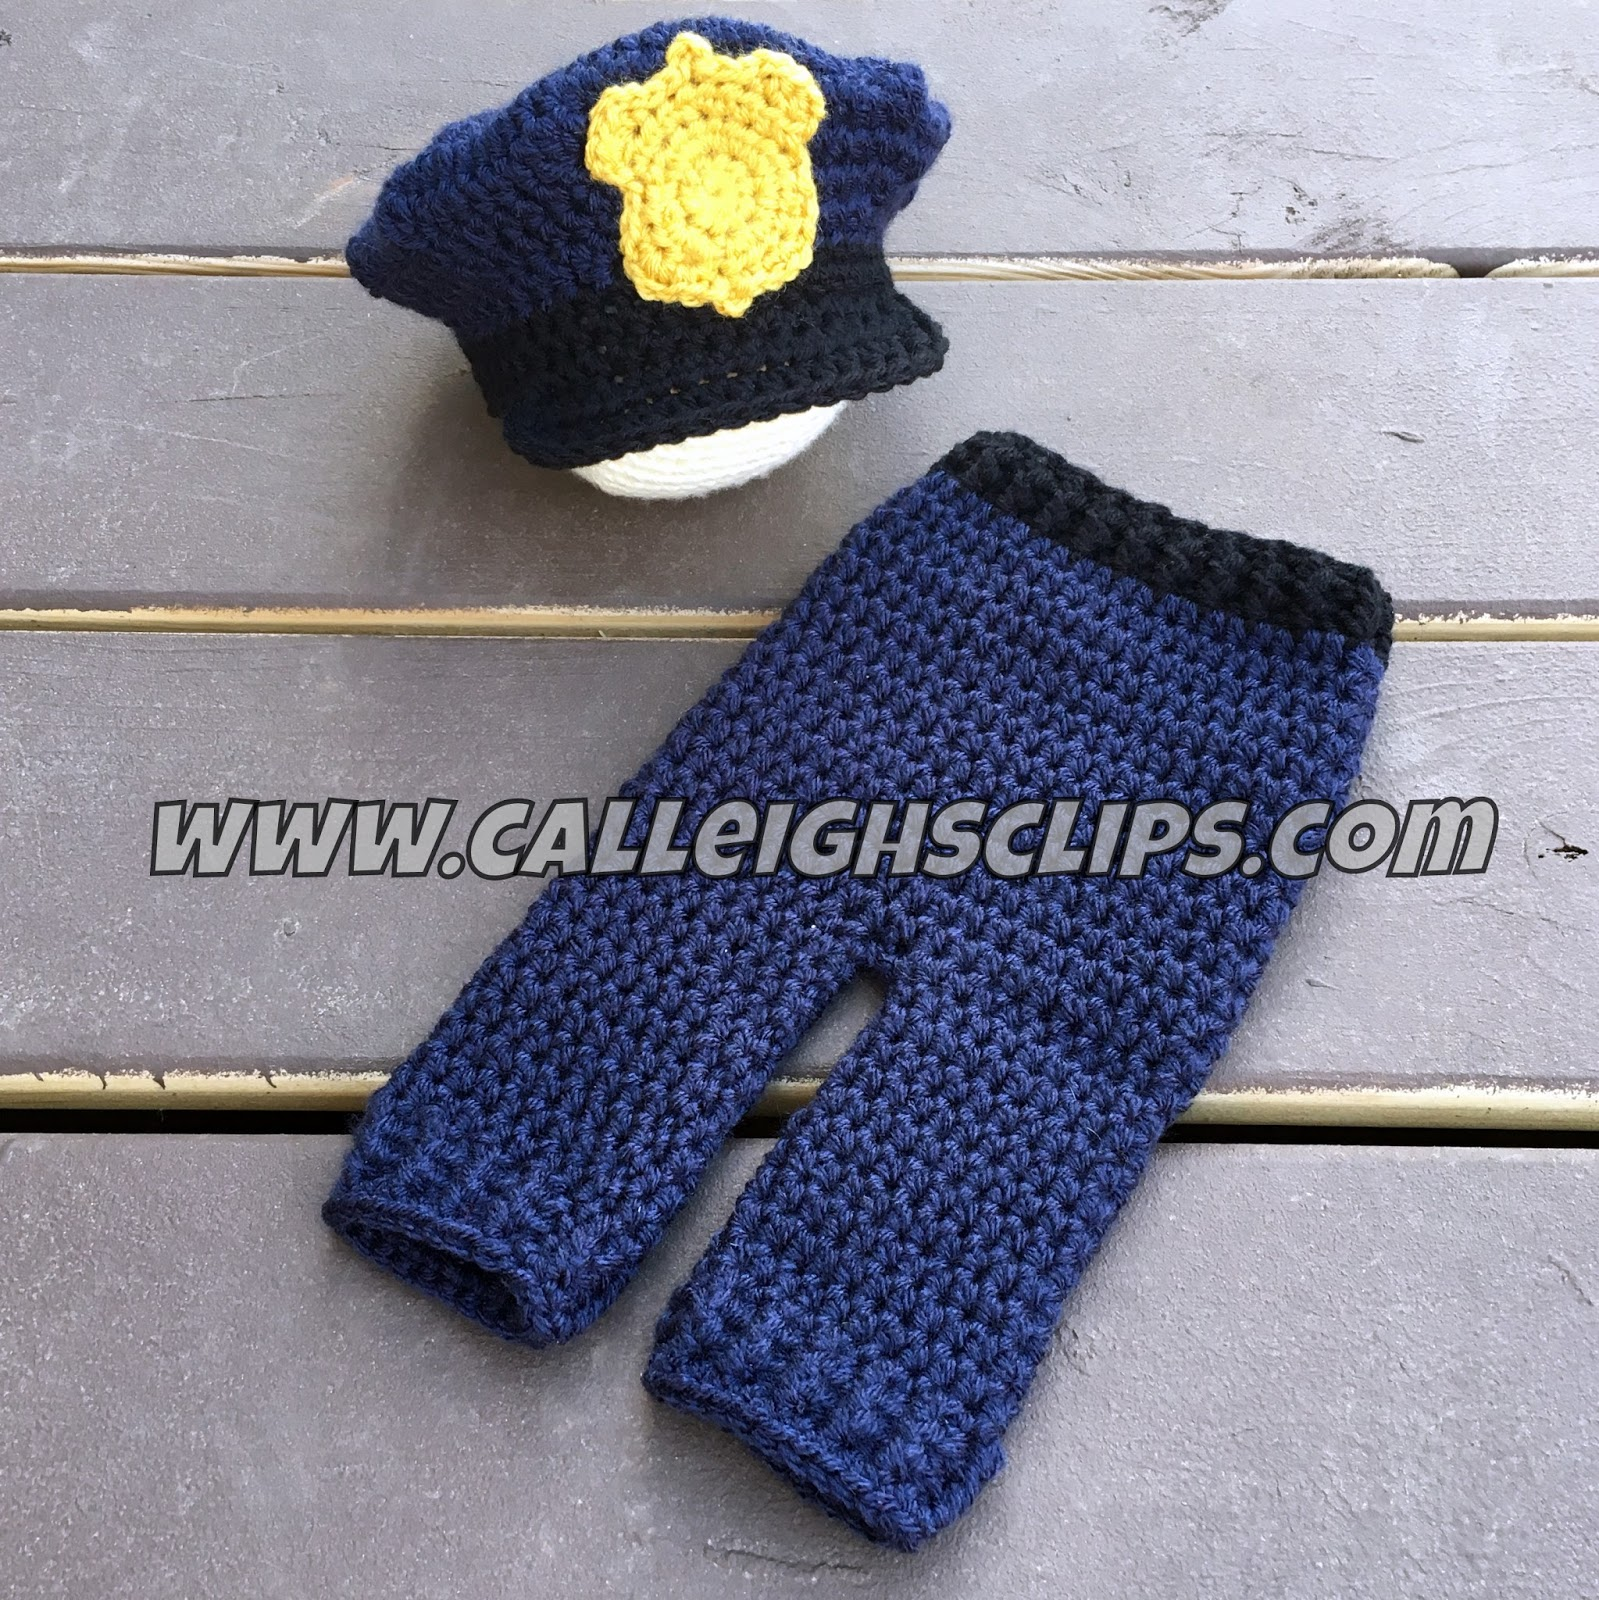 Calleigh s Clips   Crochet Creations  Police Officer Crochet Hat and ... 461edc5551a